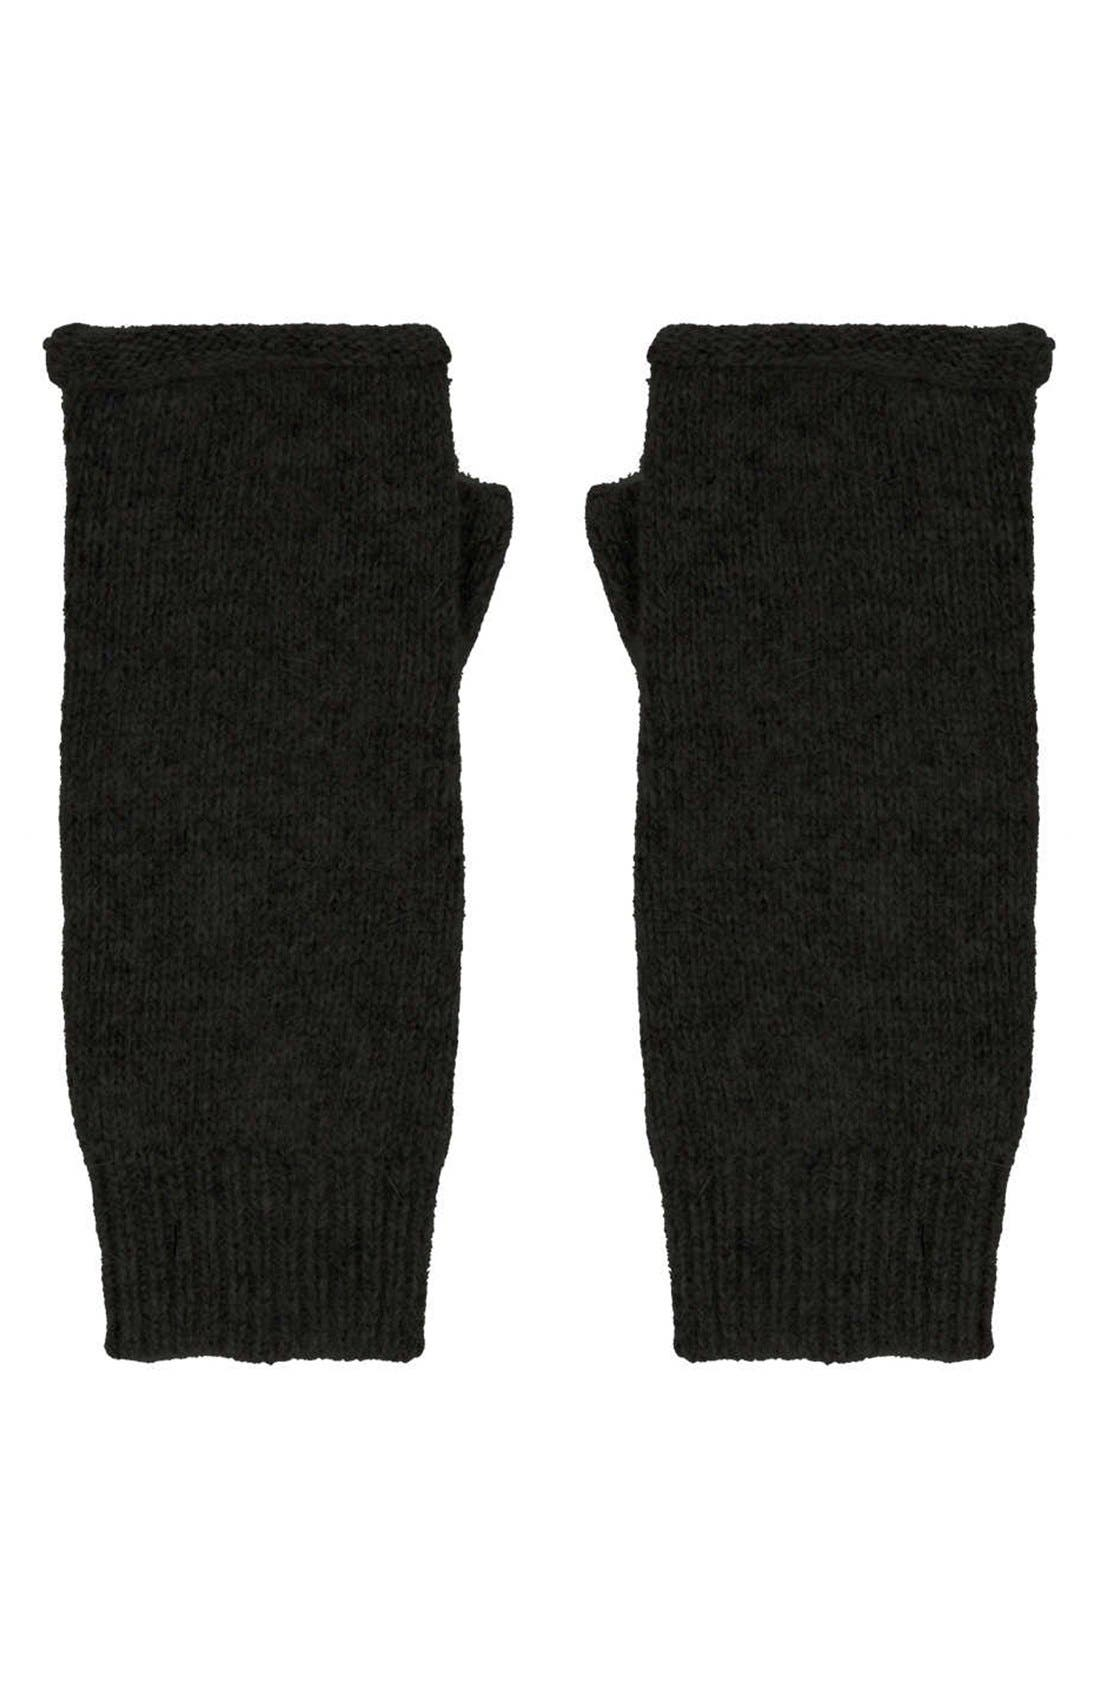 Alternate Image 2  - Topshop Fingerless Gloves